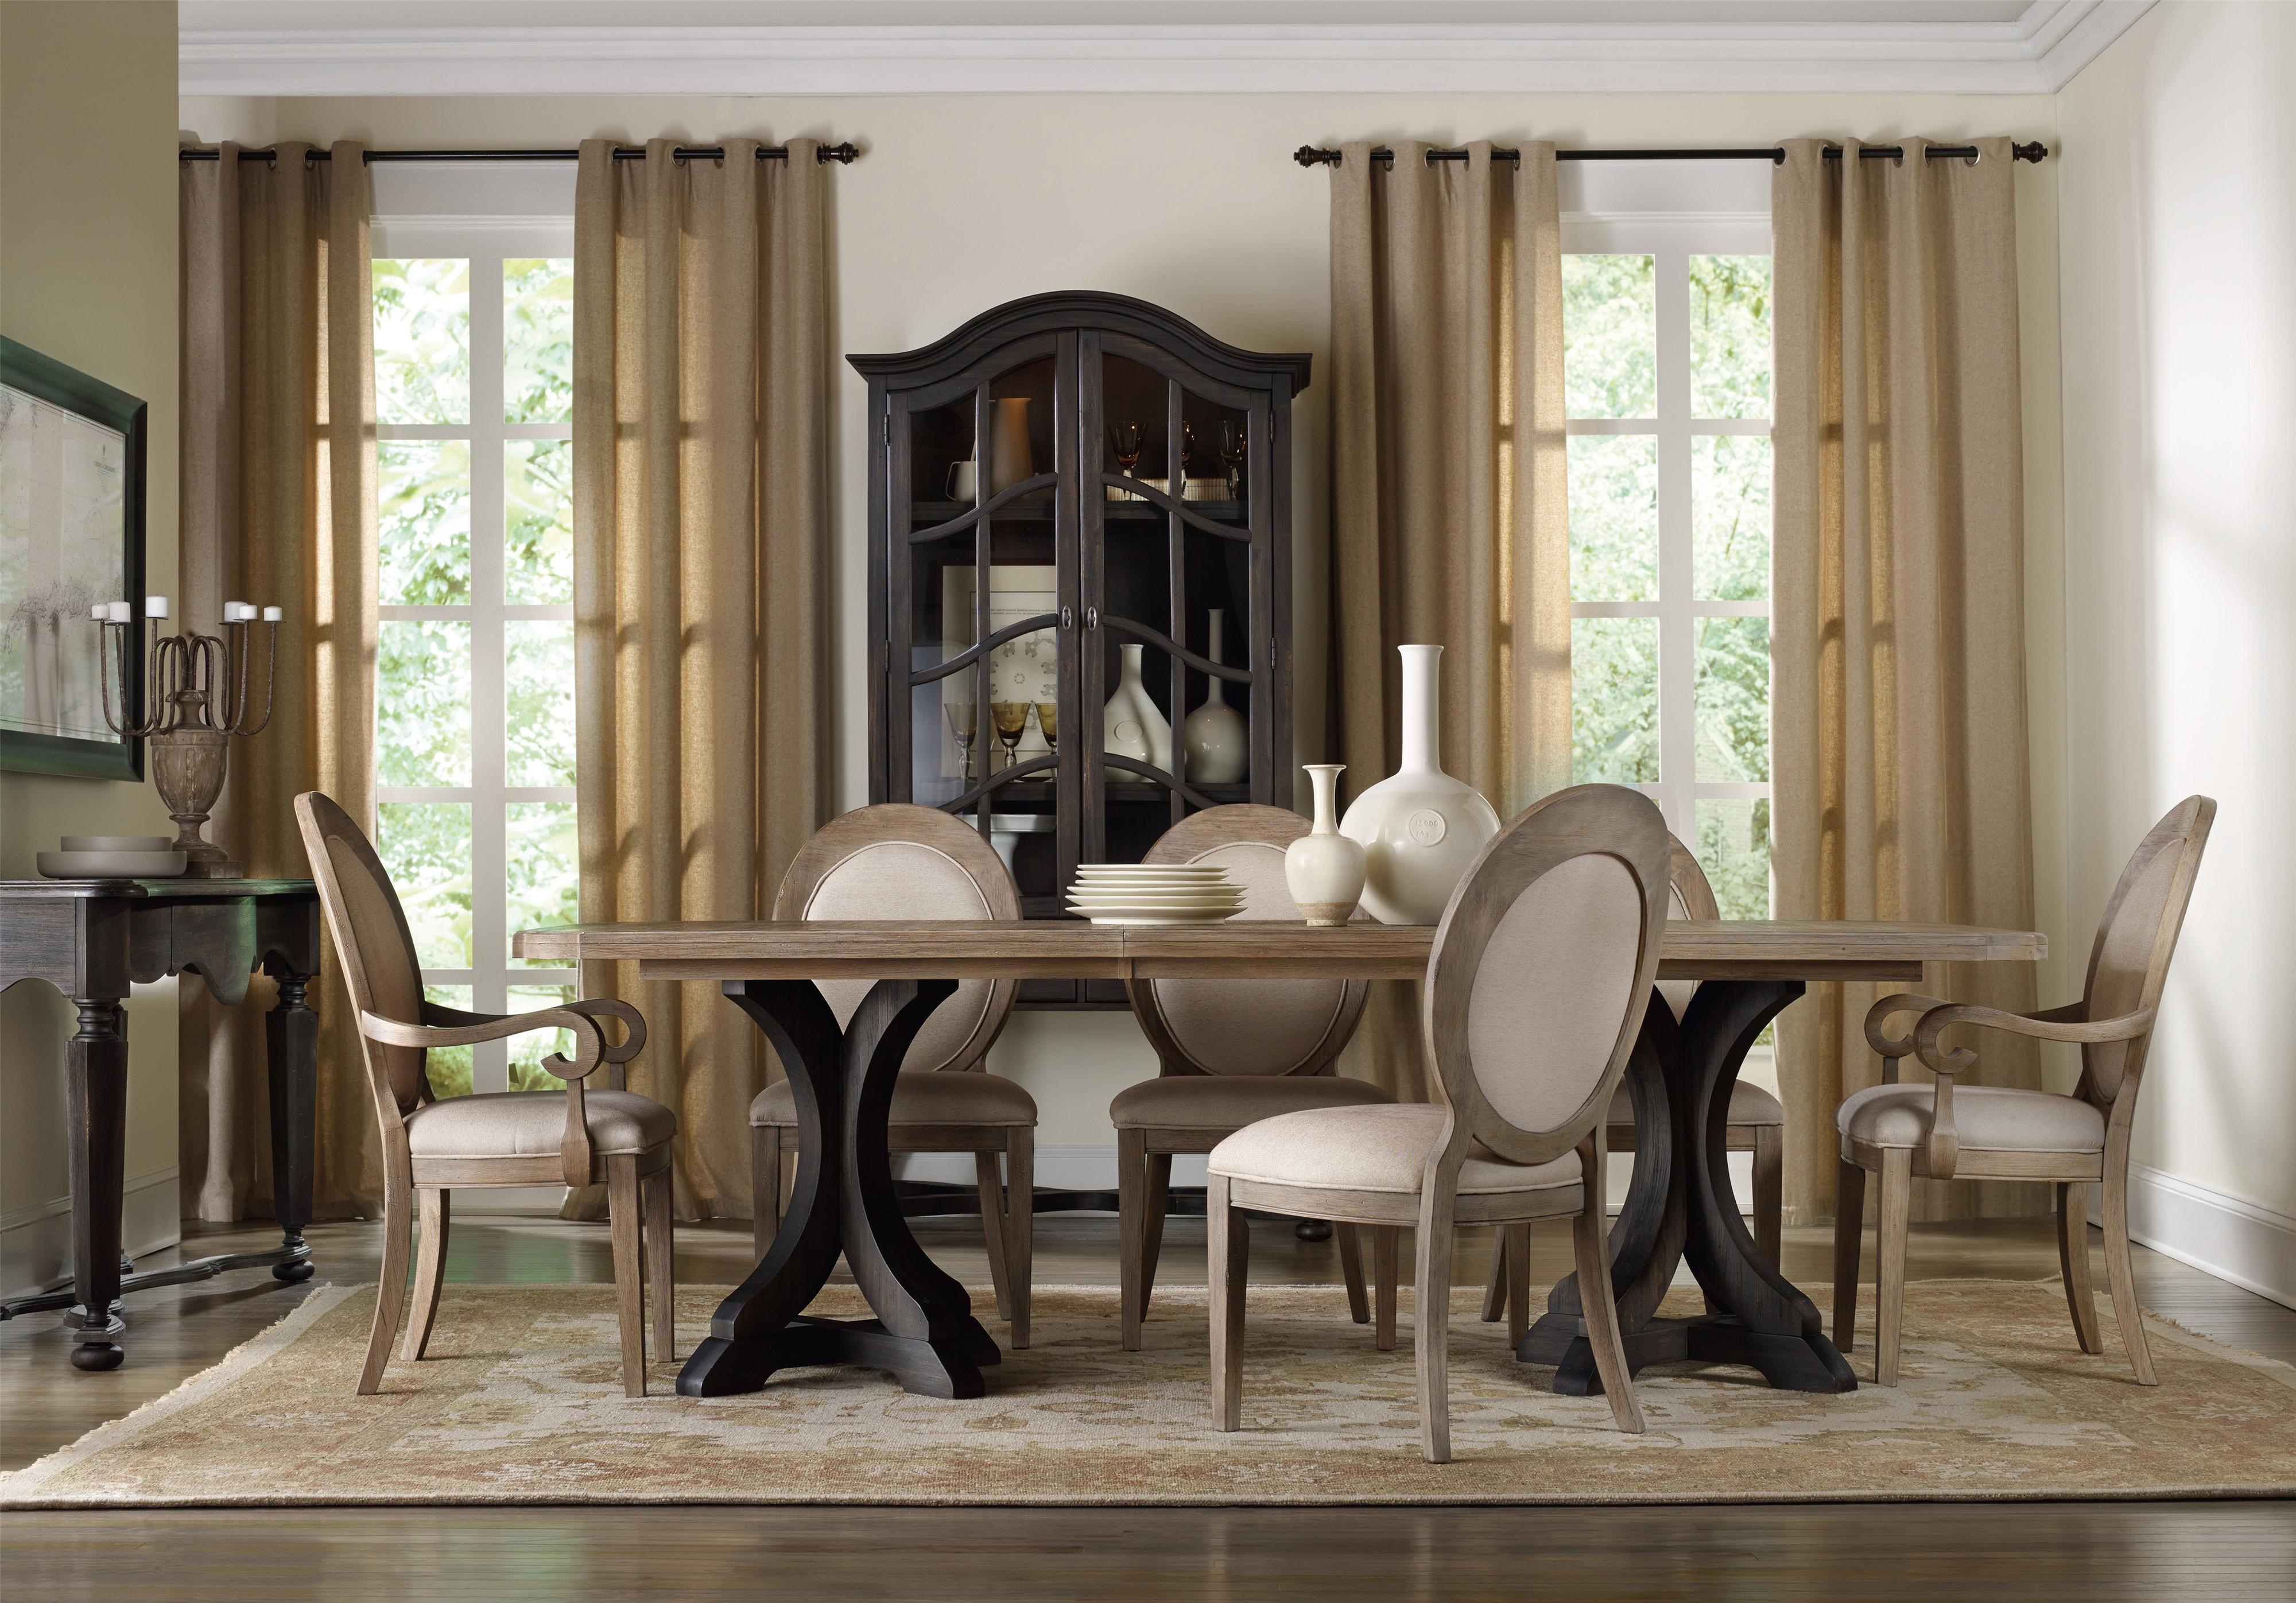 Hooker Furniture Corsica Formal Dining Room Group with Oval Back Chai - Item Number: 5280 Formal Dining Group 2